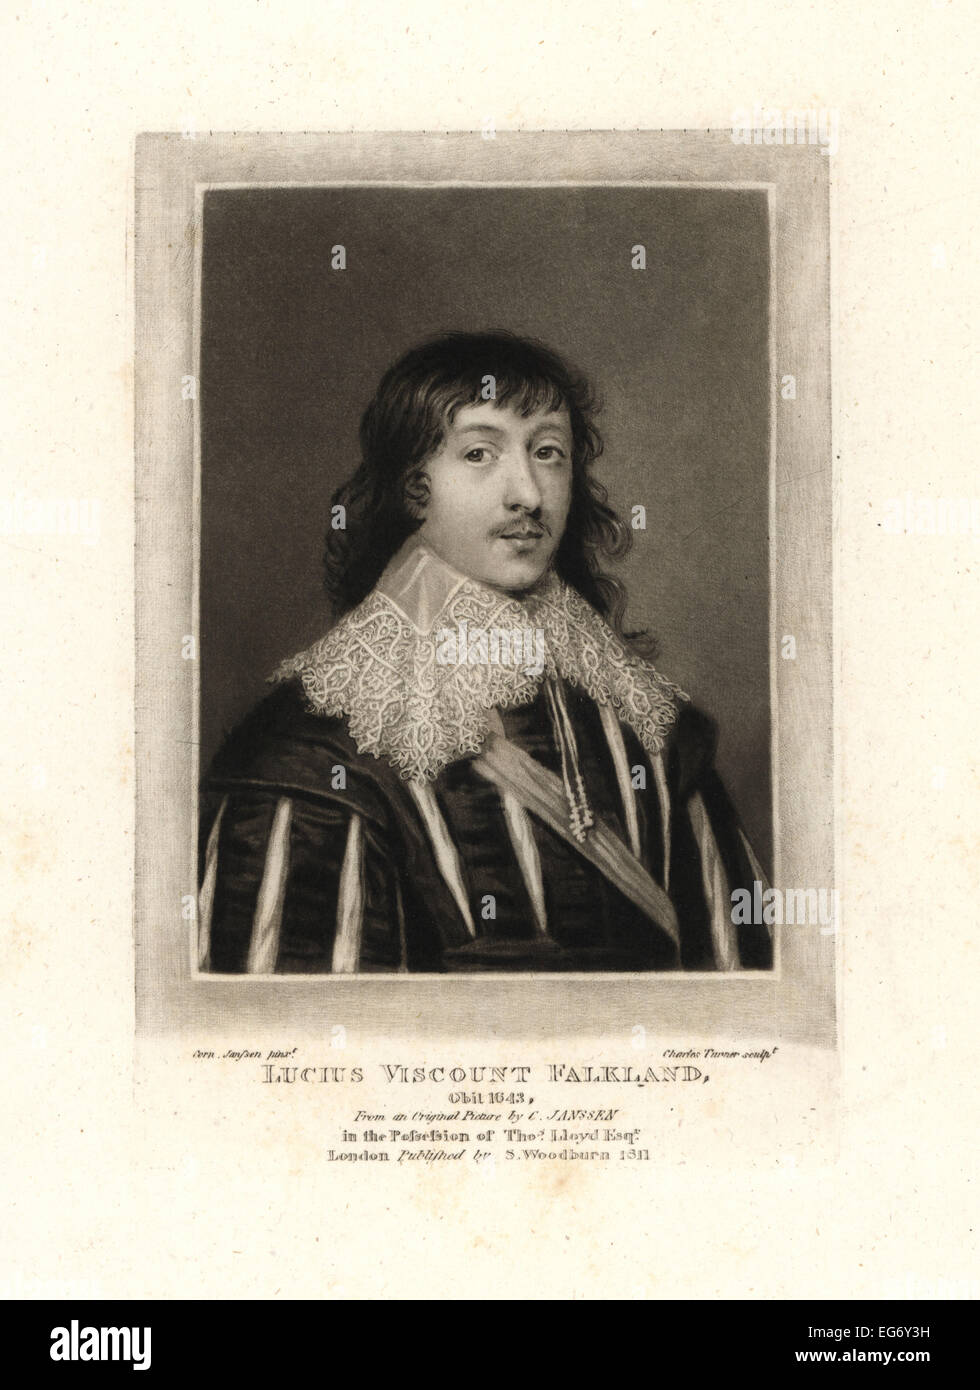 Lucius Cary, 2nd Viscount Falkland, Royalist politician and writer, died 1643. - Stock Image